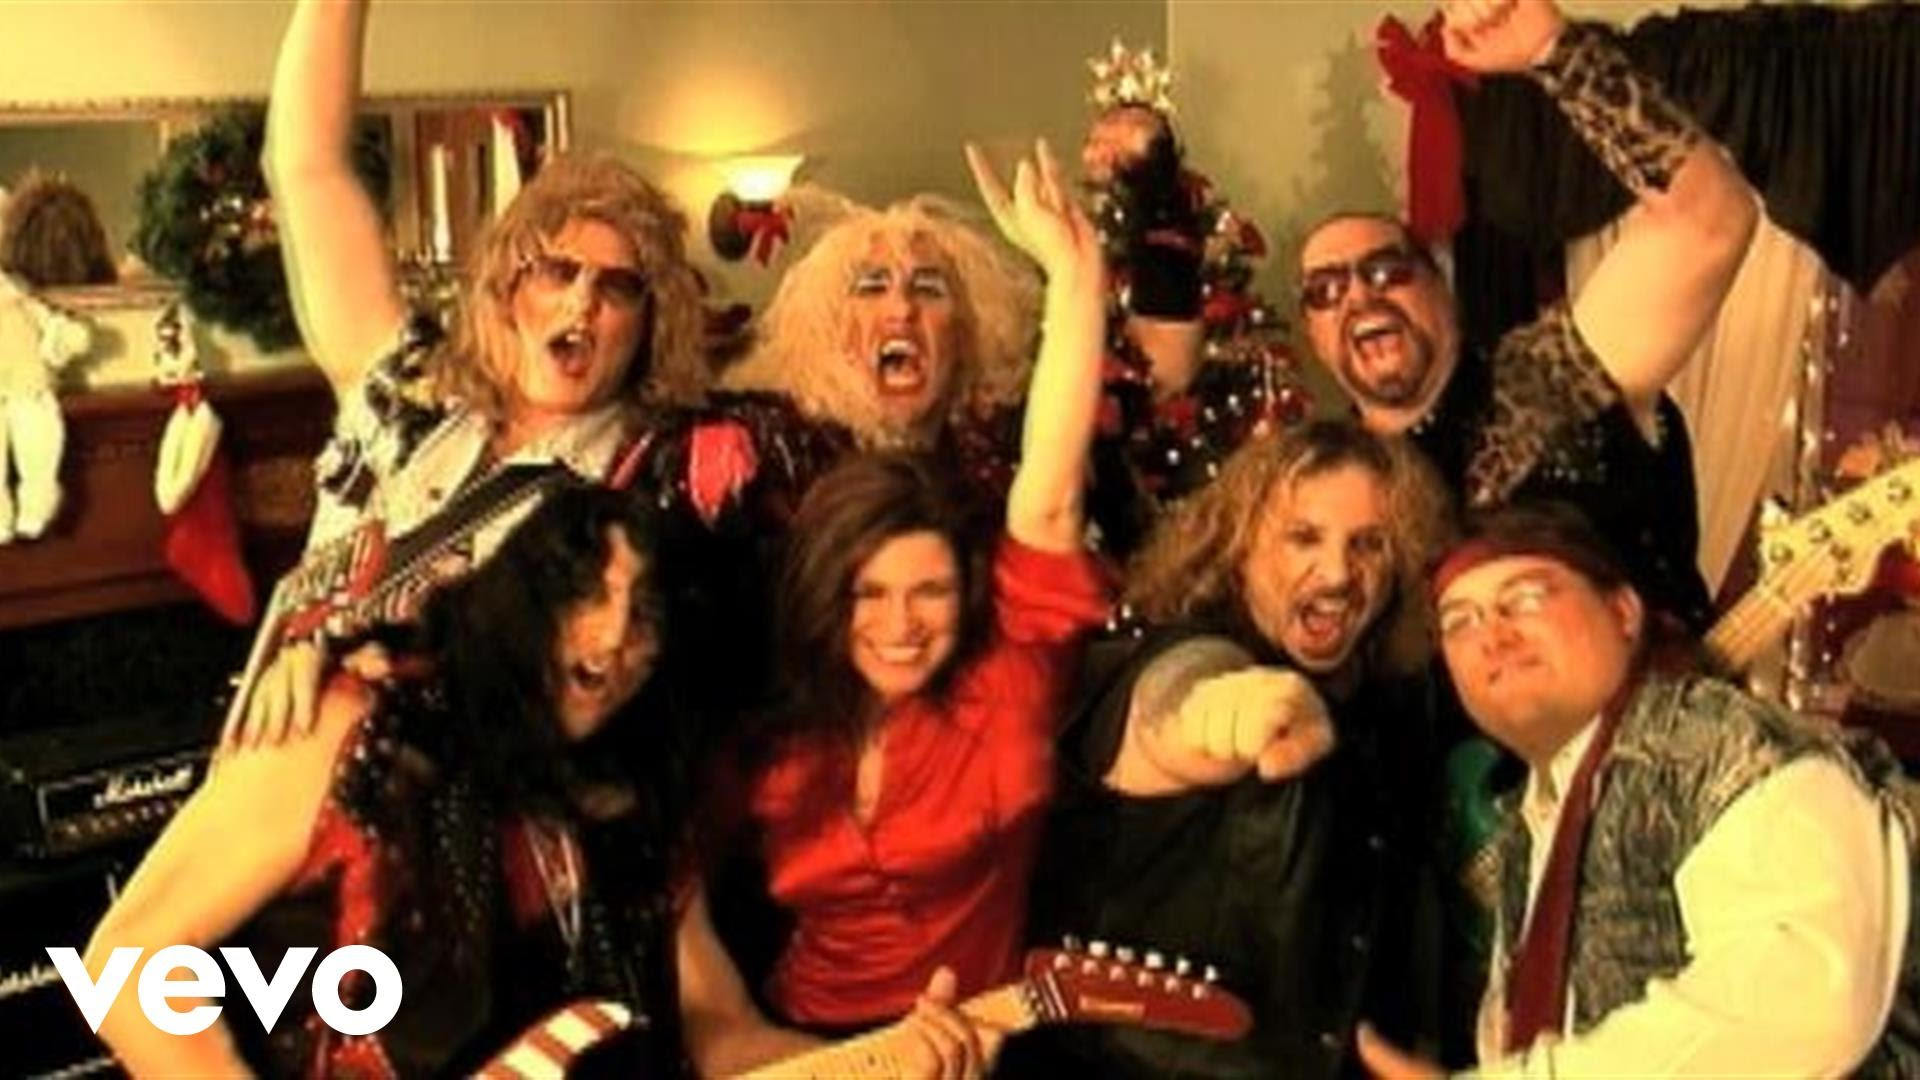 Bloodstock news: Hope everyones have a really TWISTED CHRISTMAS!  video by Twisted Sister perform…